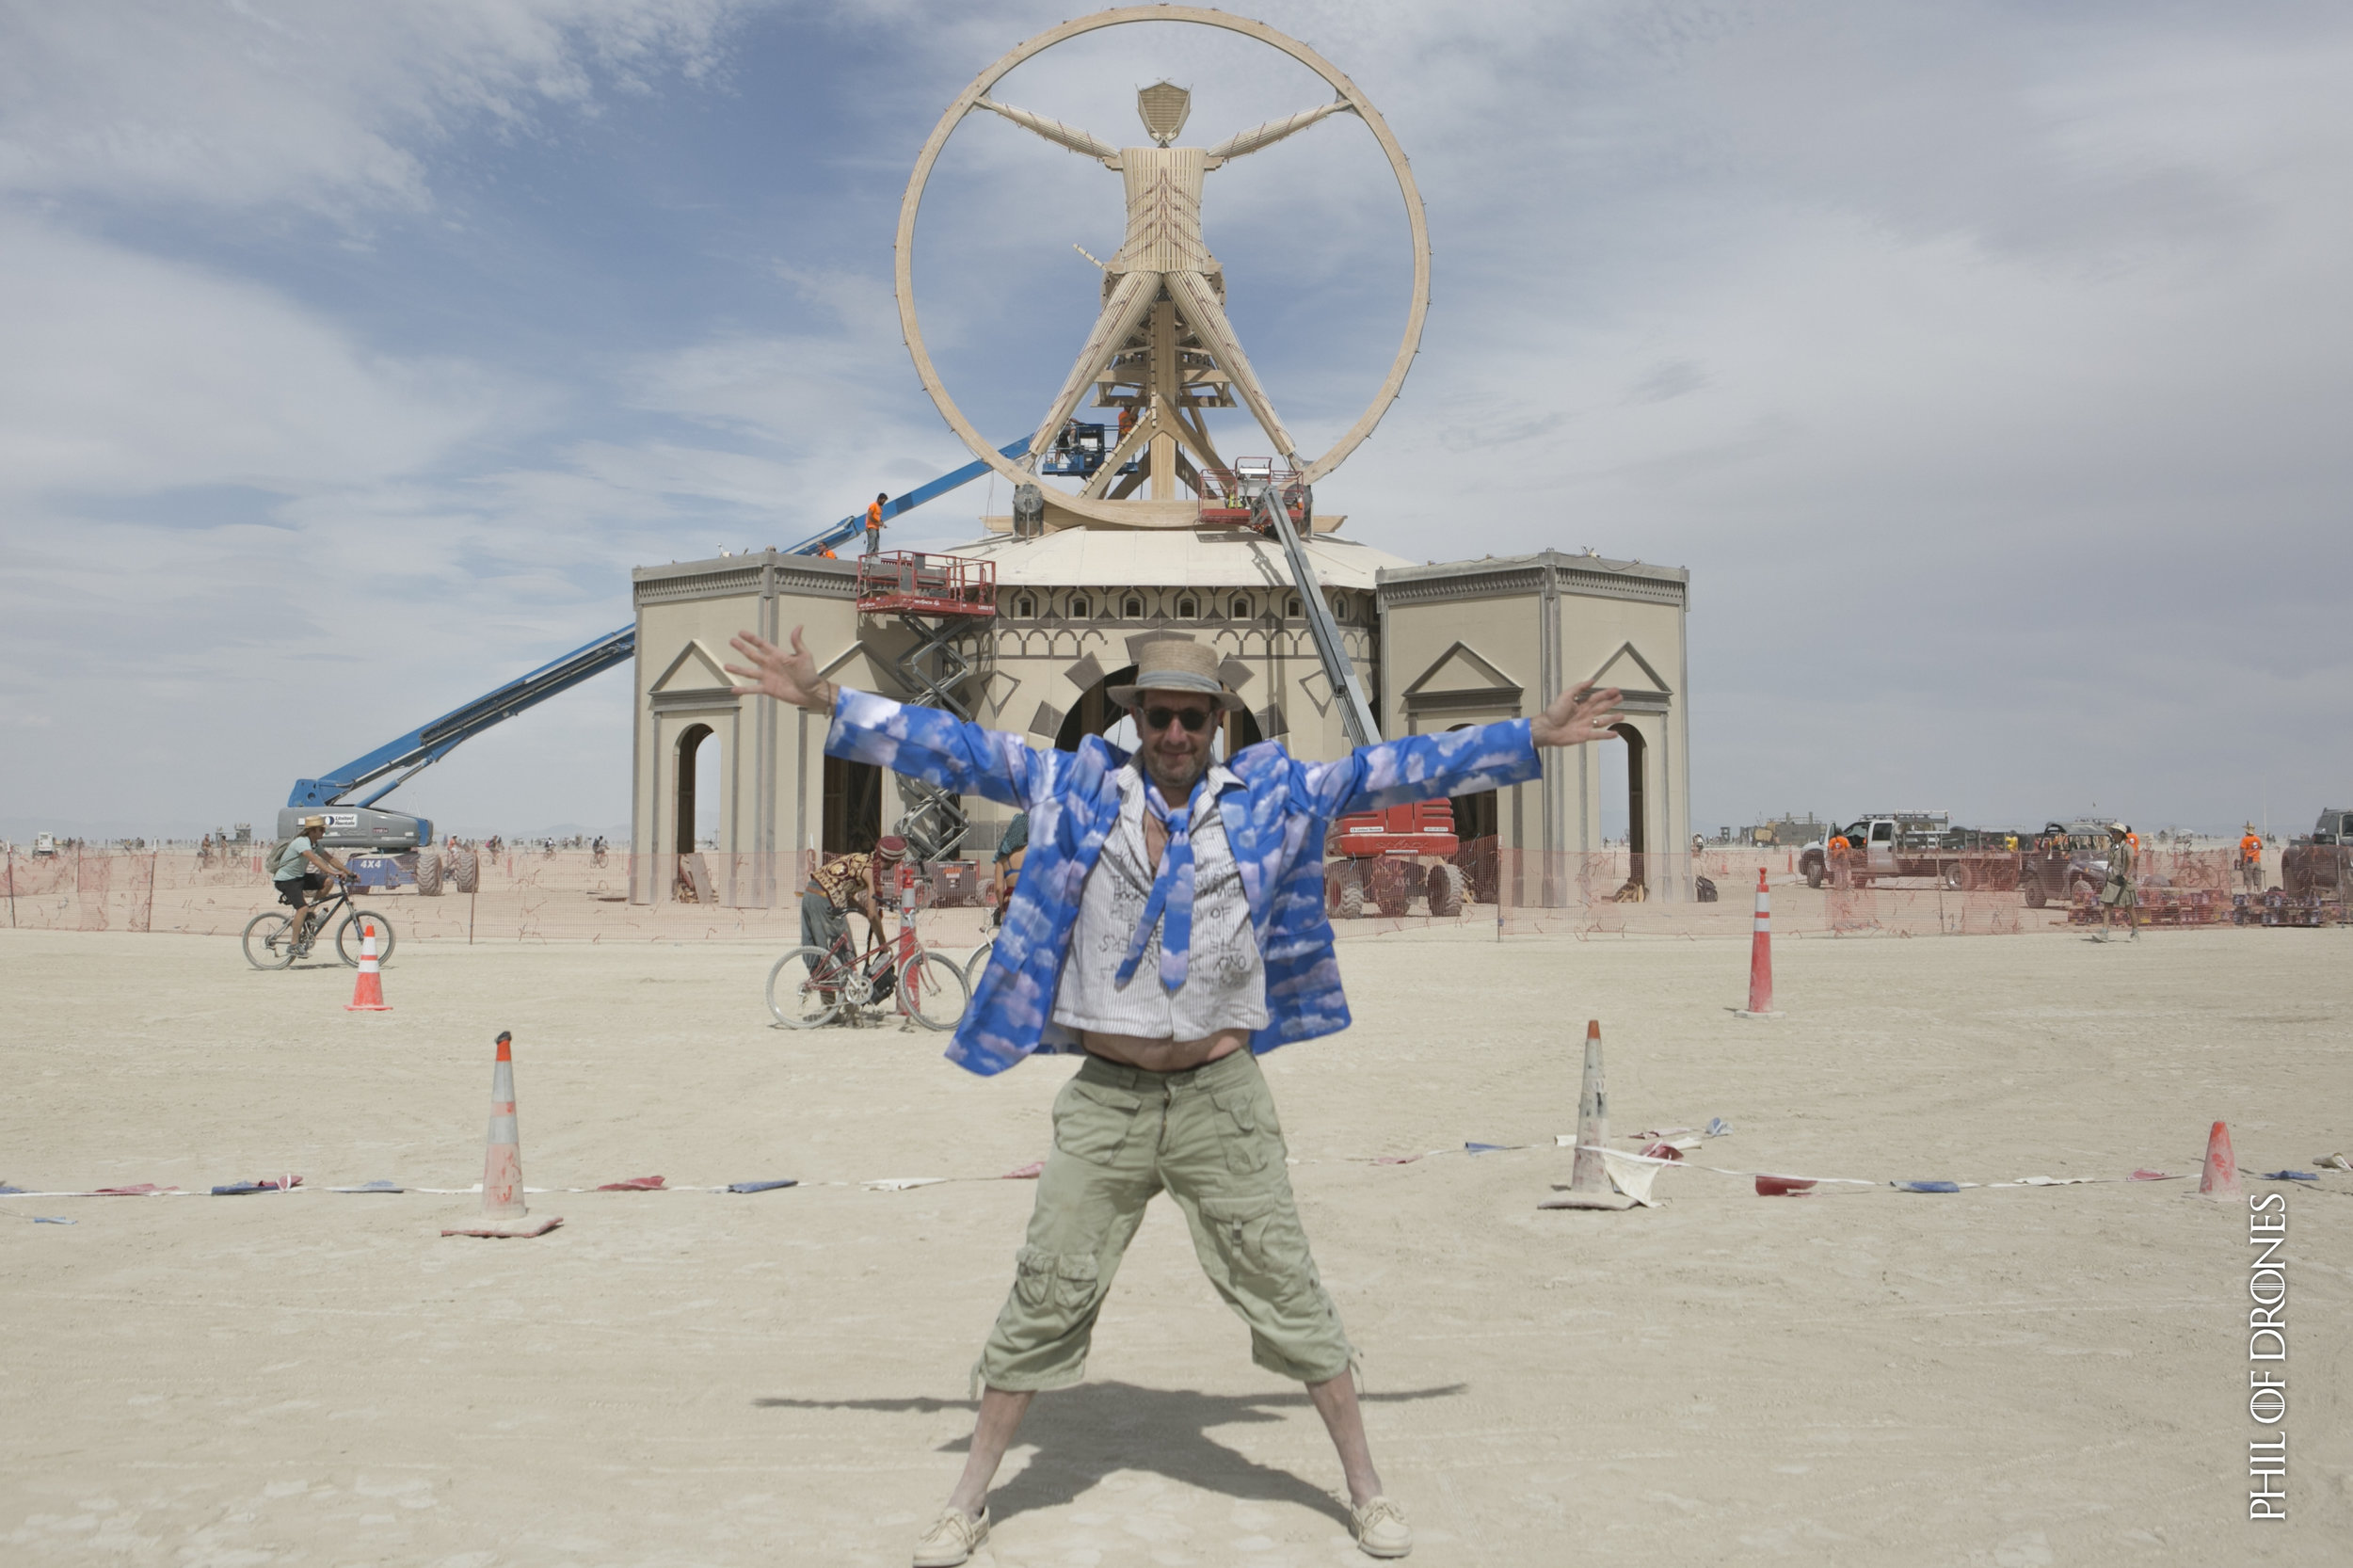 Burning Man 2016-5-PhM-3.jpg